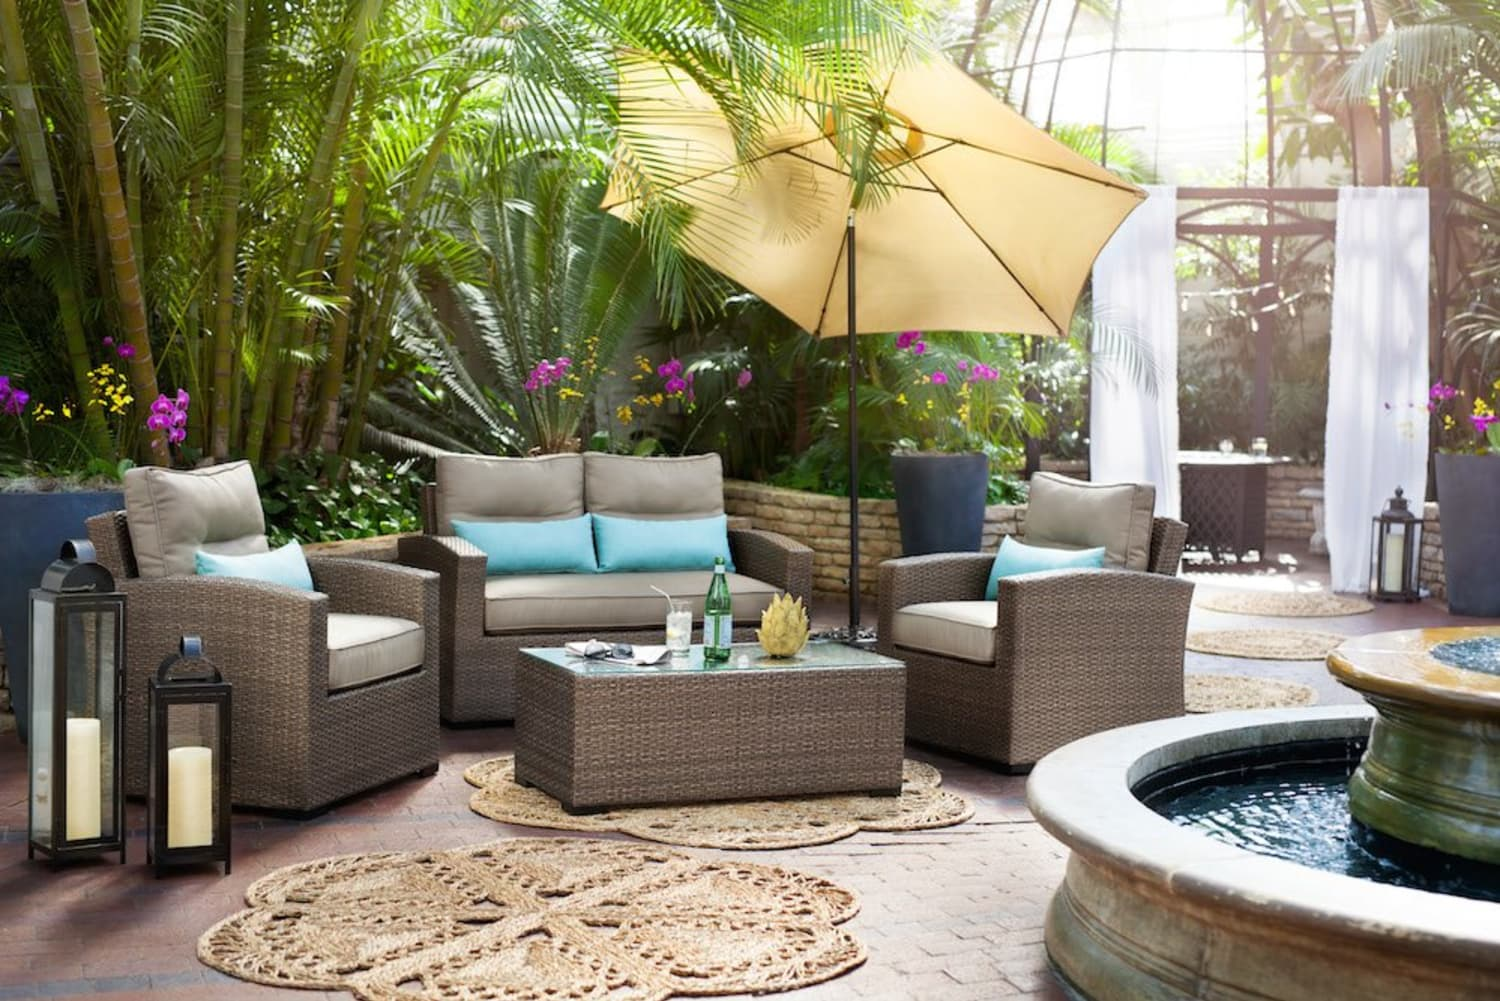 5 Ways to Create a Backyard Getaway | Apartment Therapy